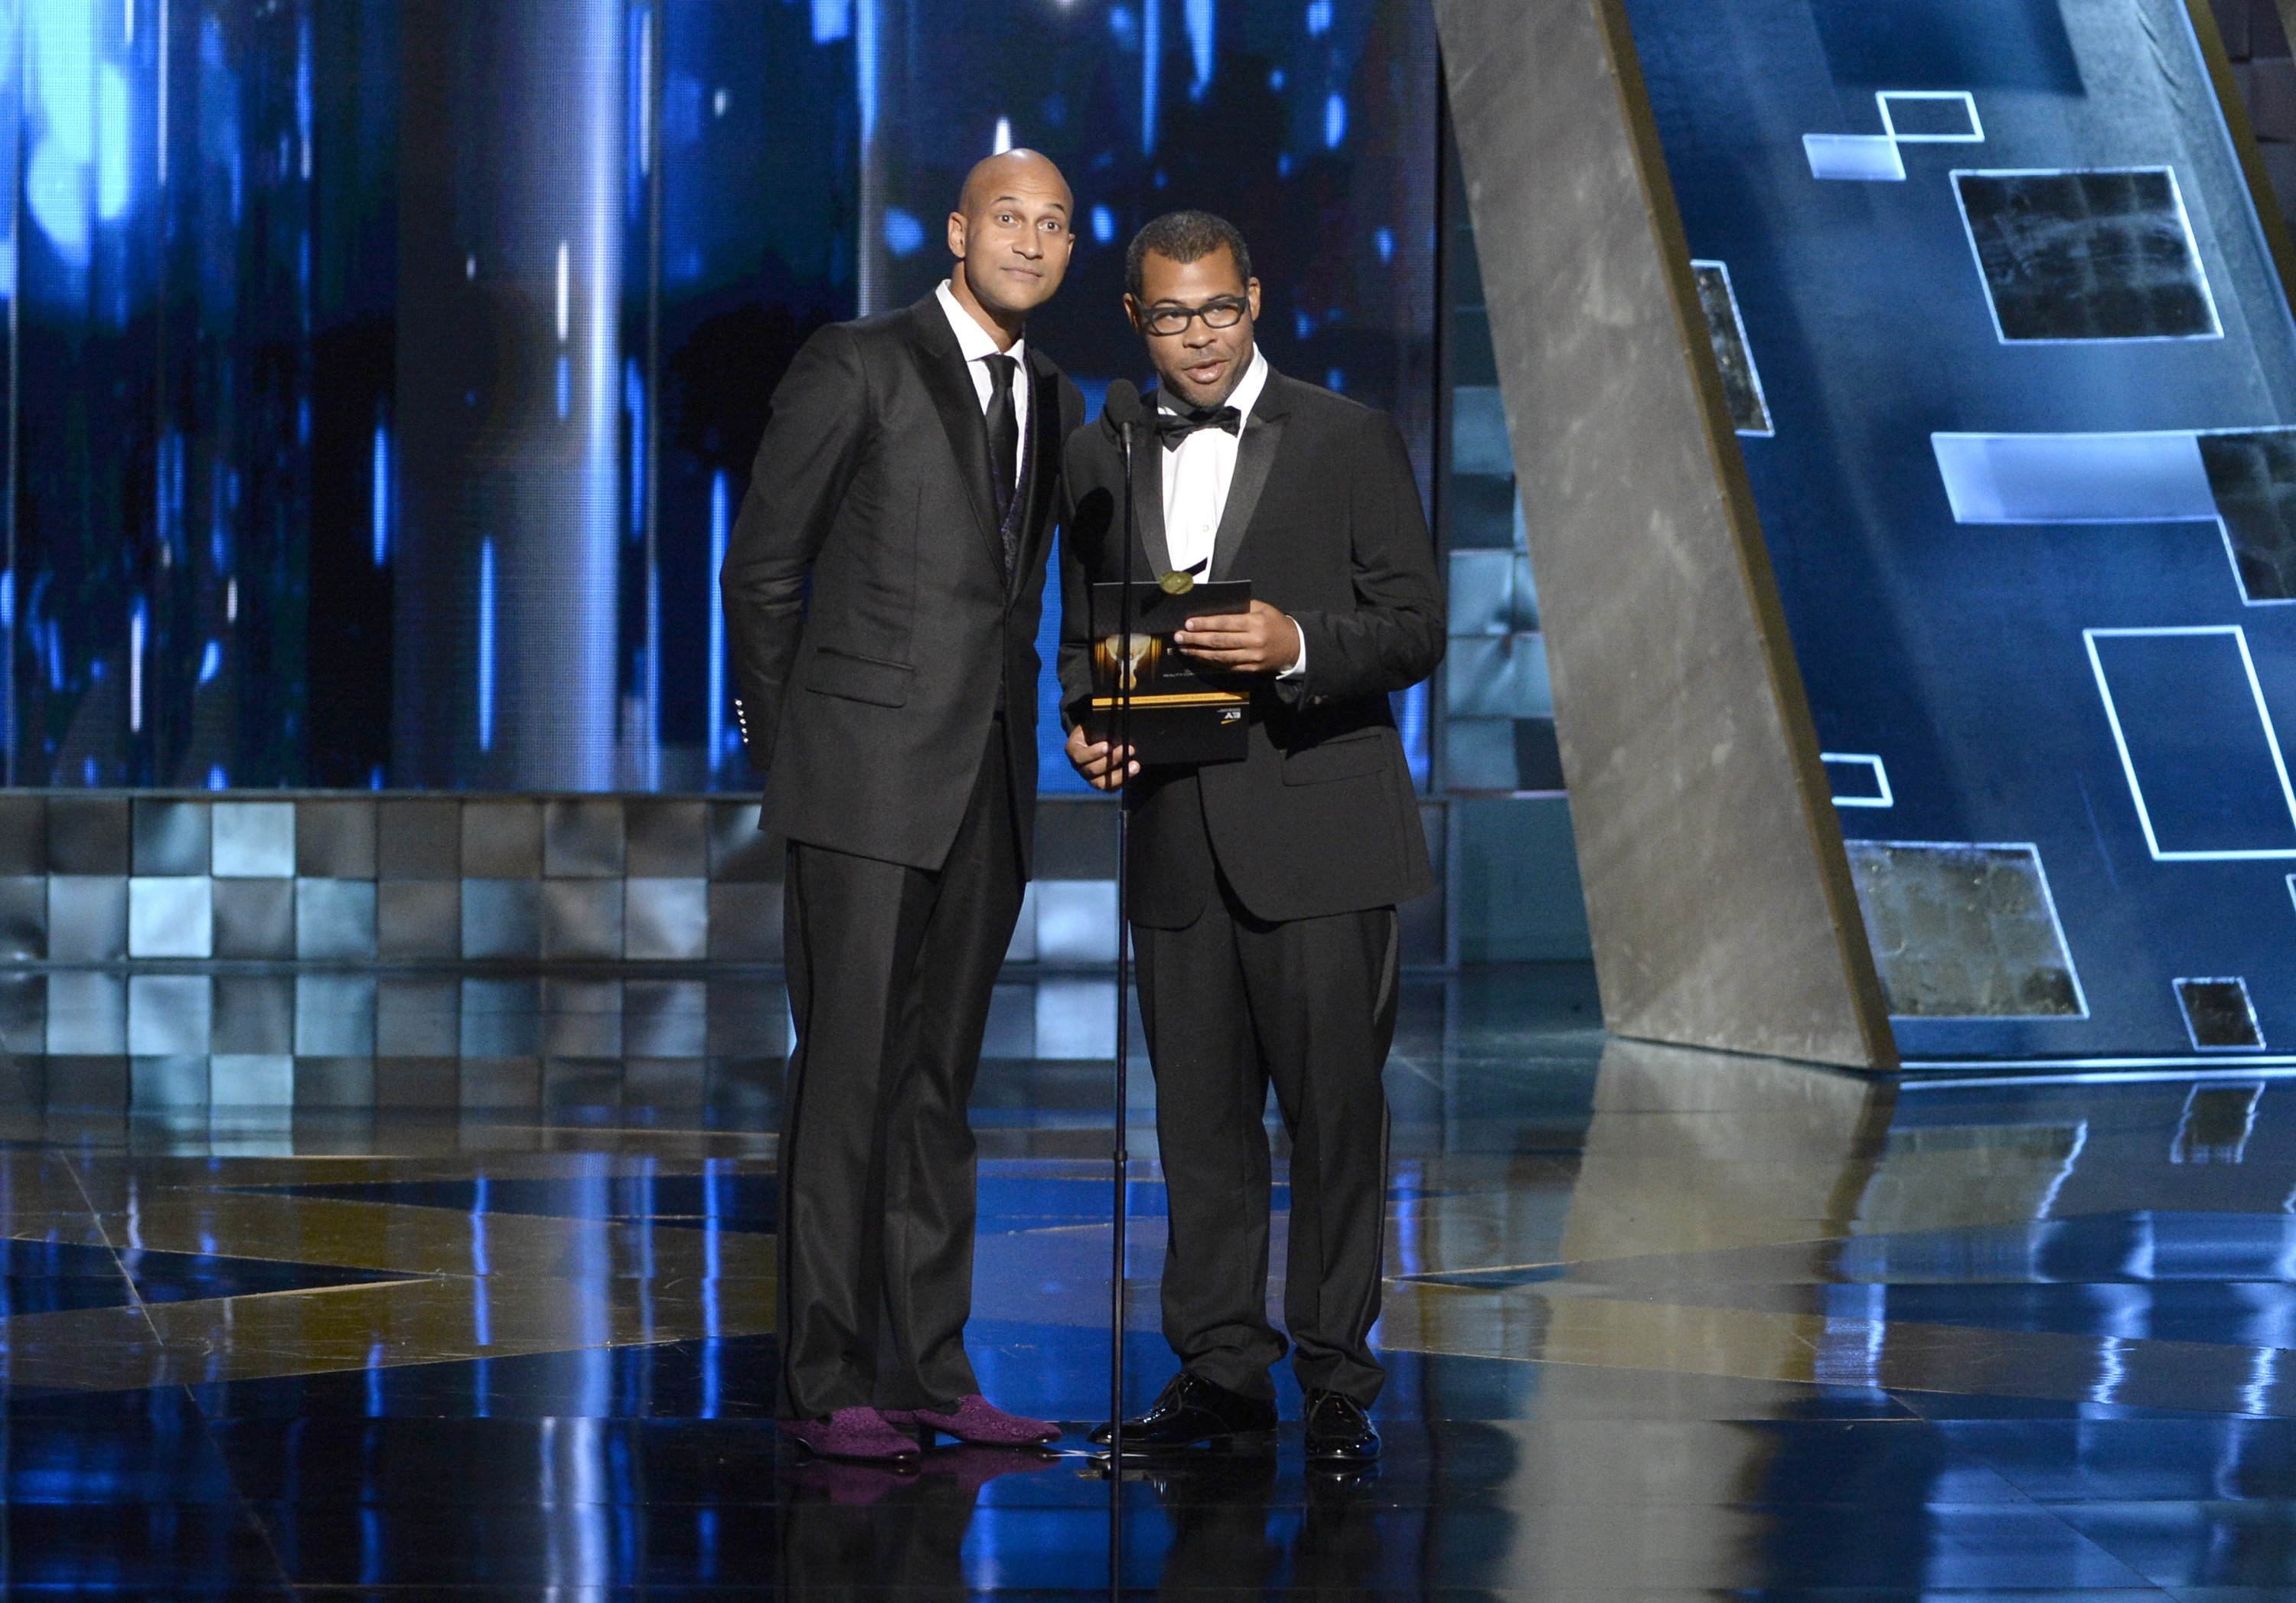 Keegan-Michael Key, left, and Jordan Peele present the award for outstanding reality - competition program at the 67th Primetime Emmy Awards on Sept. 20, 2015, at the Microsoft Theater in Los Angeles.